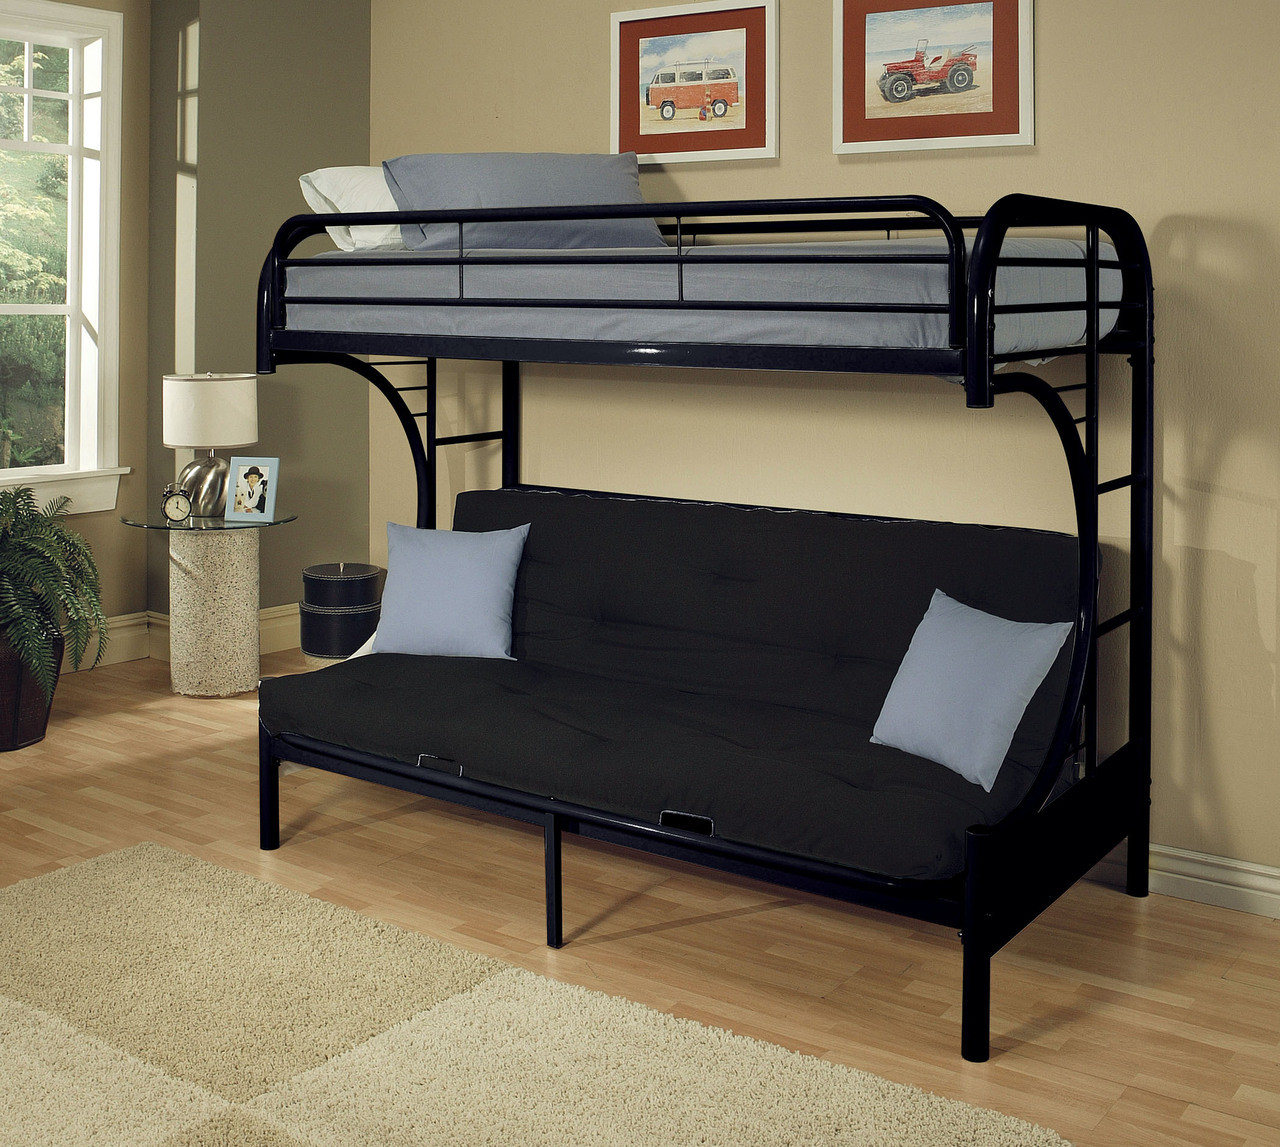 Terrific Futon Bunk Bed Black Gmtry Best Dining Table And Chair Ideas Images Gmtryco